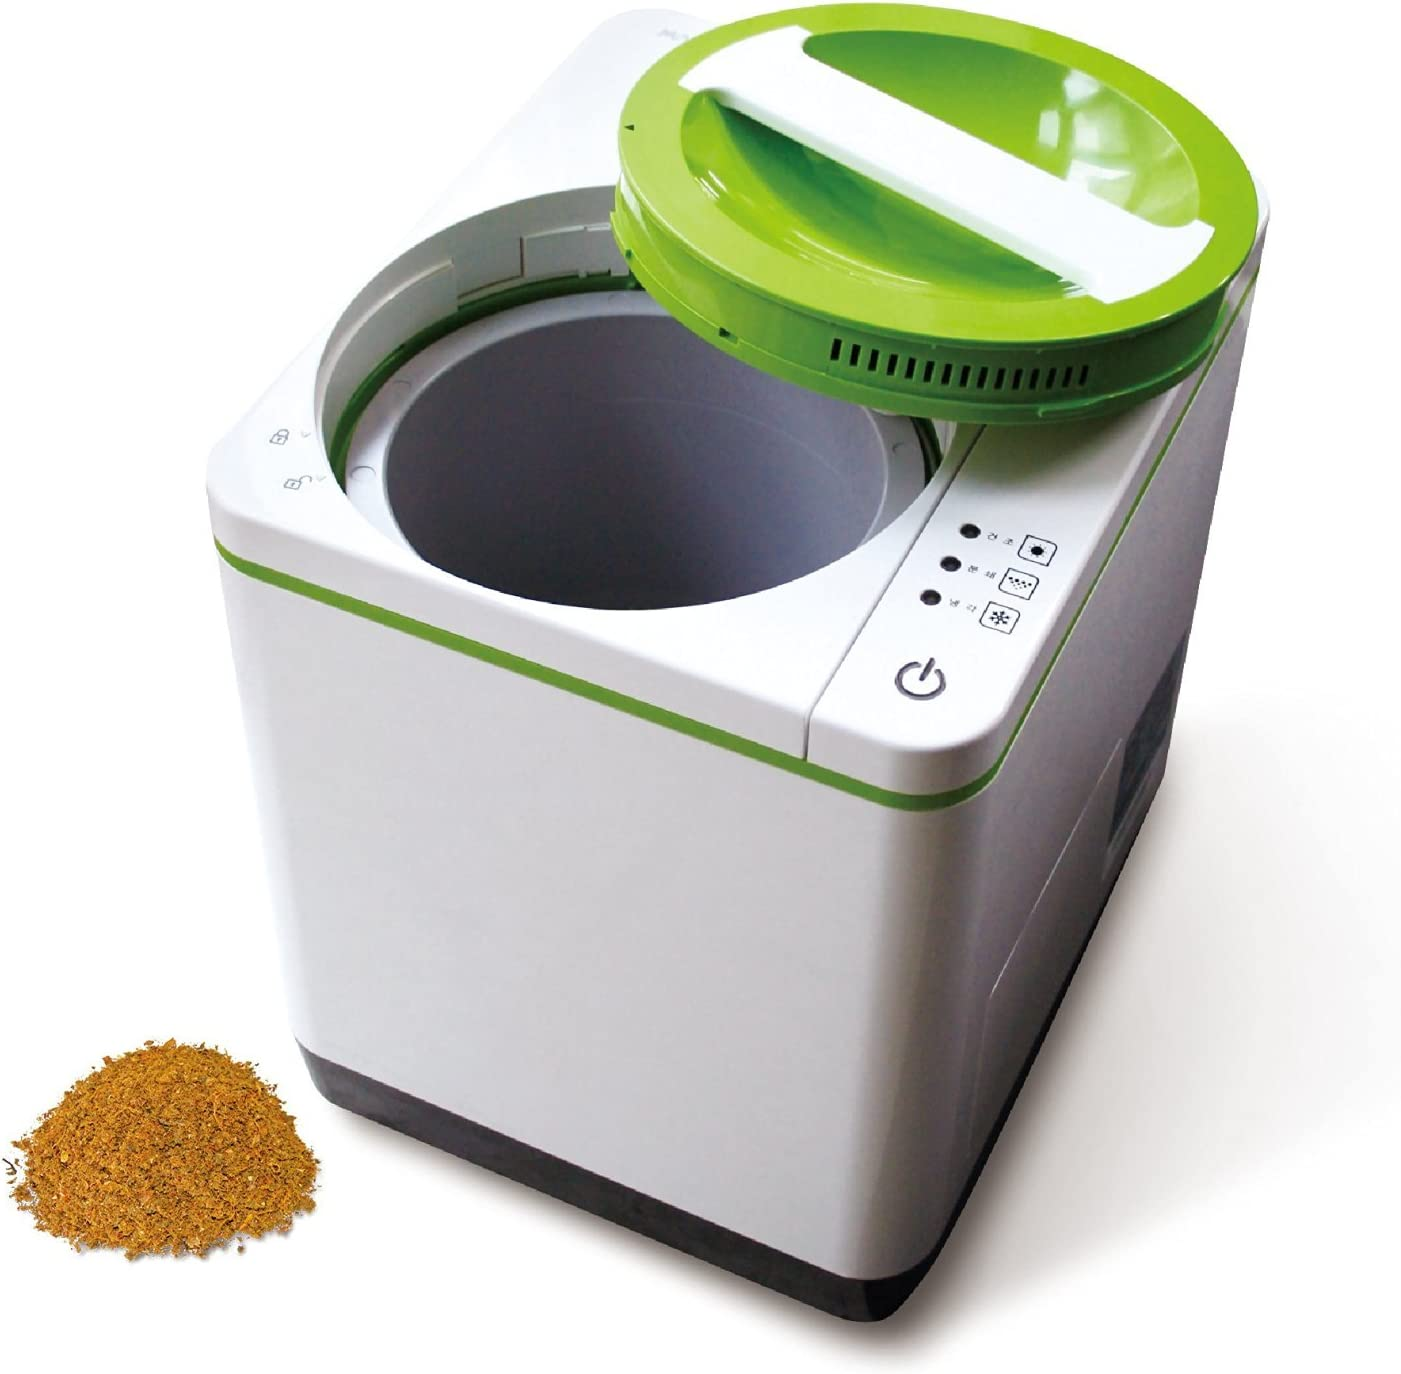 Food Cycler Indoor Kitchen Composter - Easy to Use and Environmentally with No Water, Chemicals, Venting or Draining Required + Spared Echo Filter 2 PCS + Simple English Quick Manual